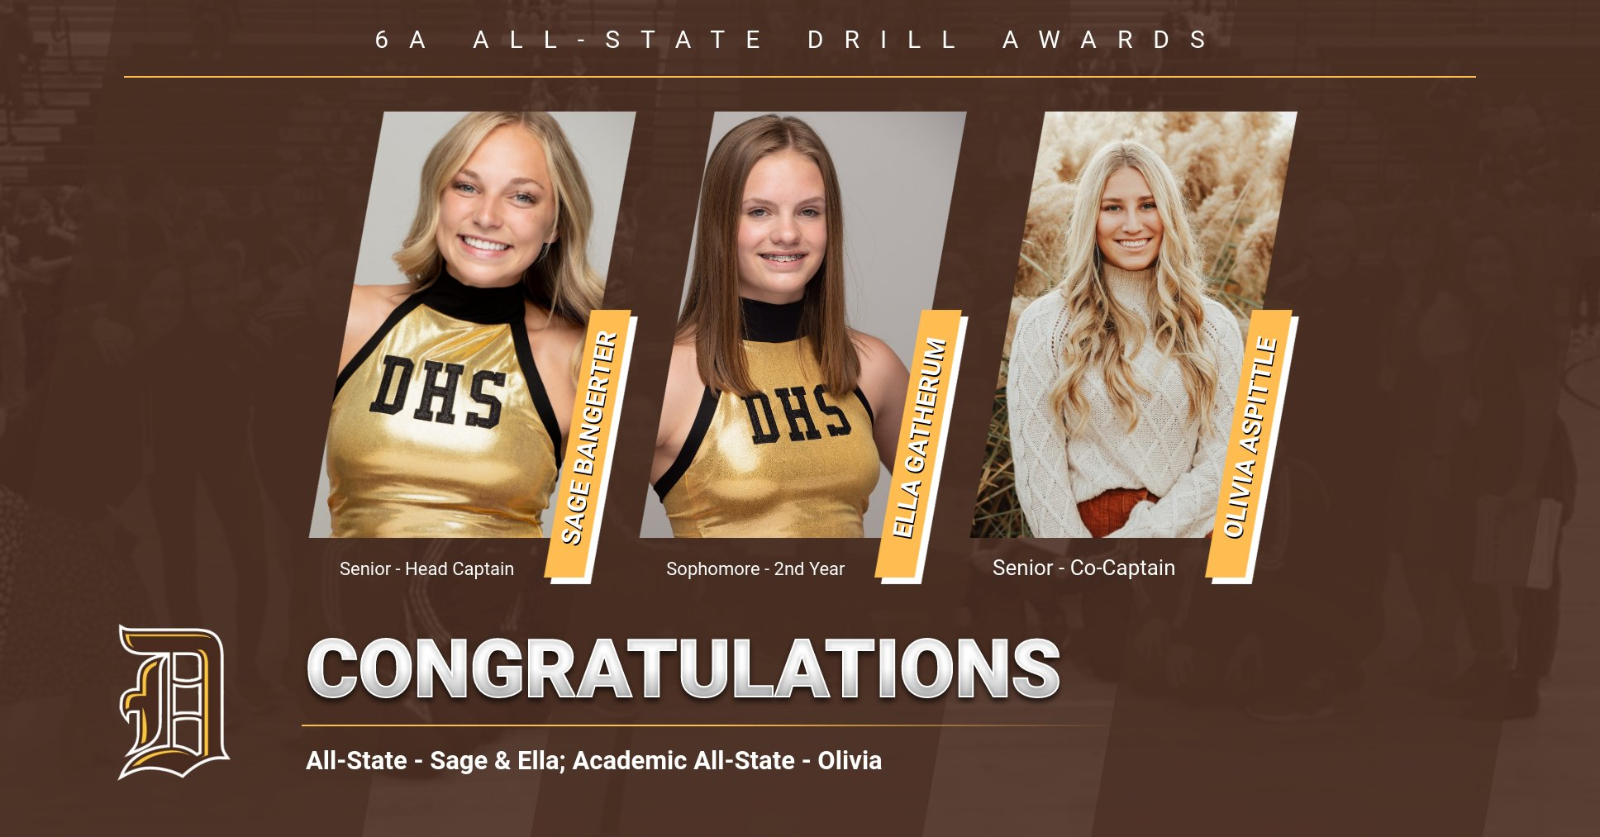 Drill All-State Awards